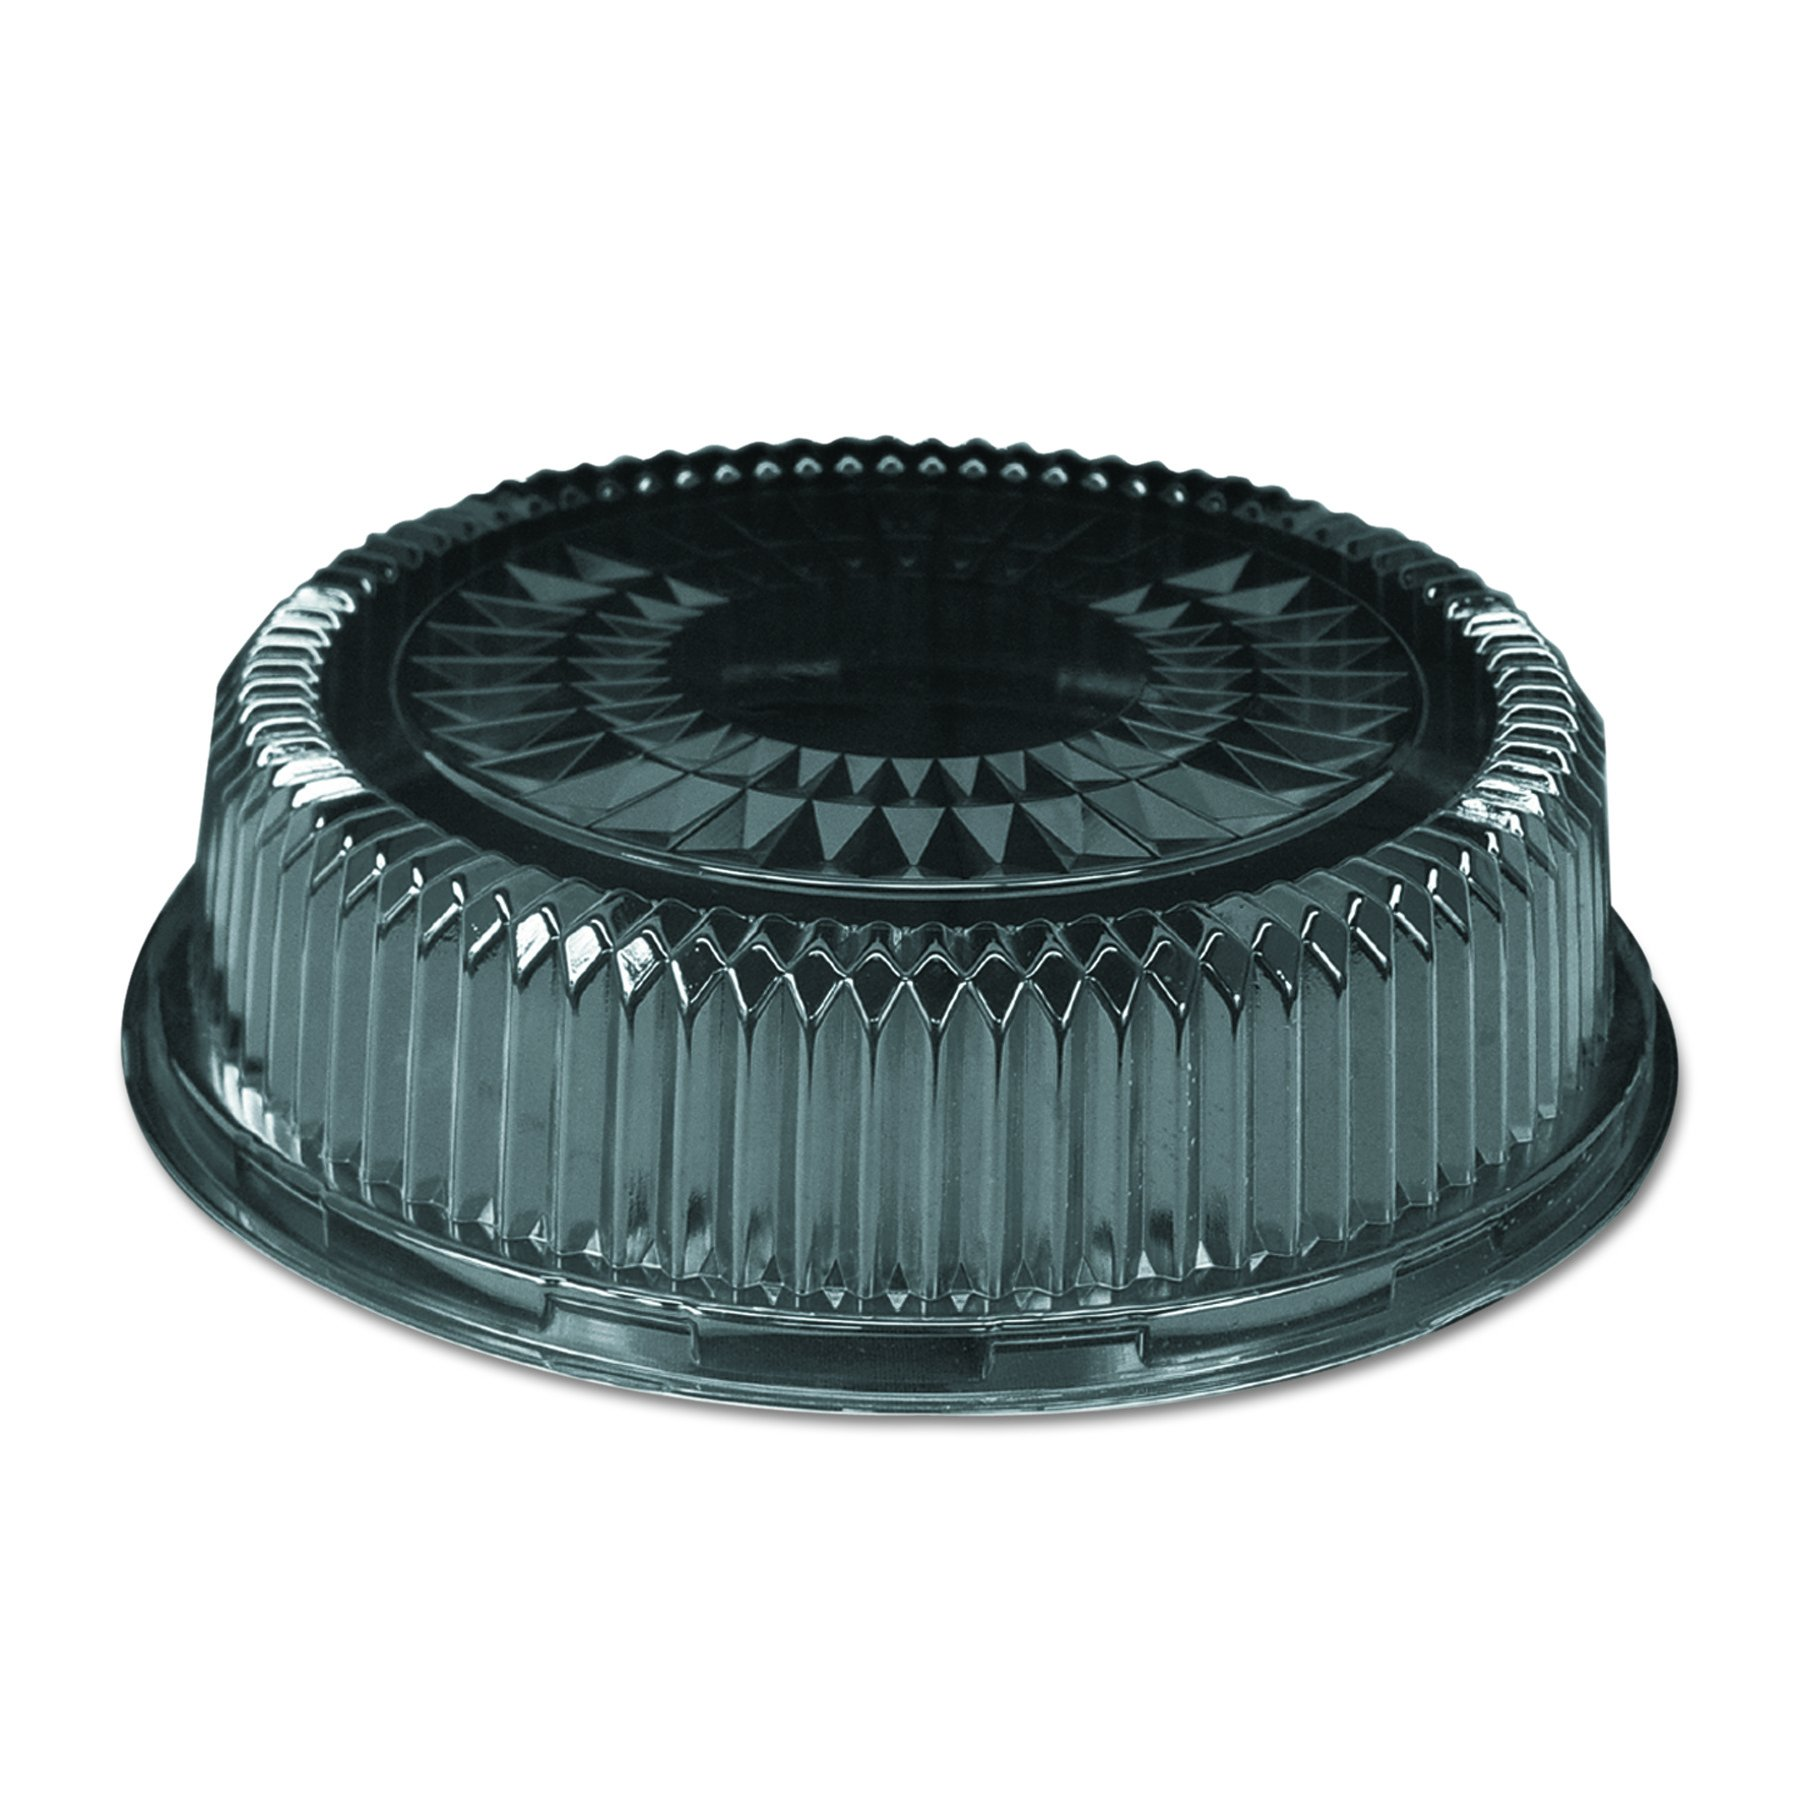 Handi-Foil of America 4012DL Plastic Dome Lid, Round, Embossed, 12 in, Fits 4012/4013 (Case of 25)